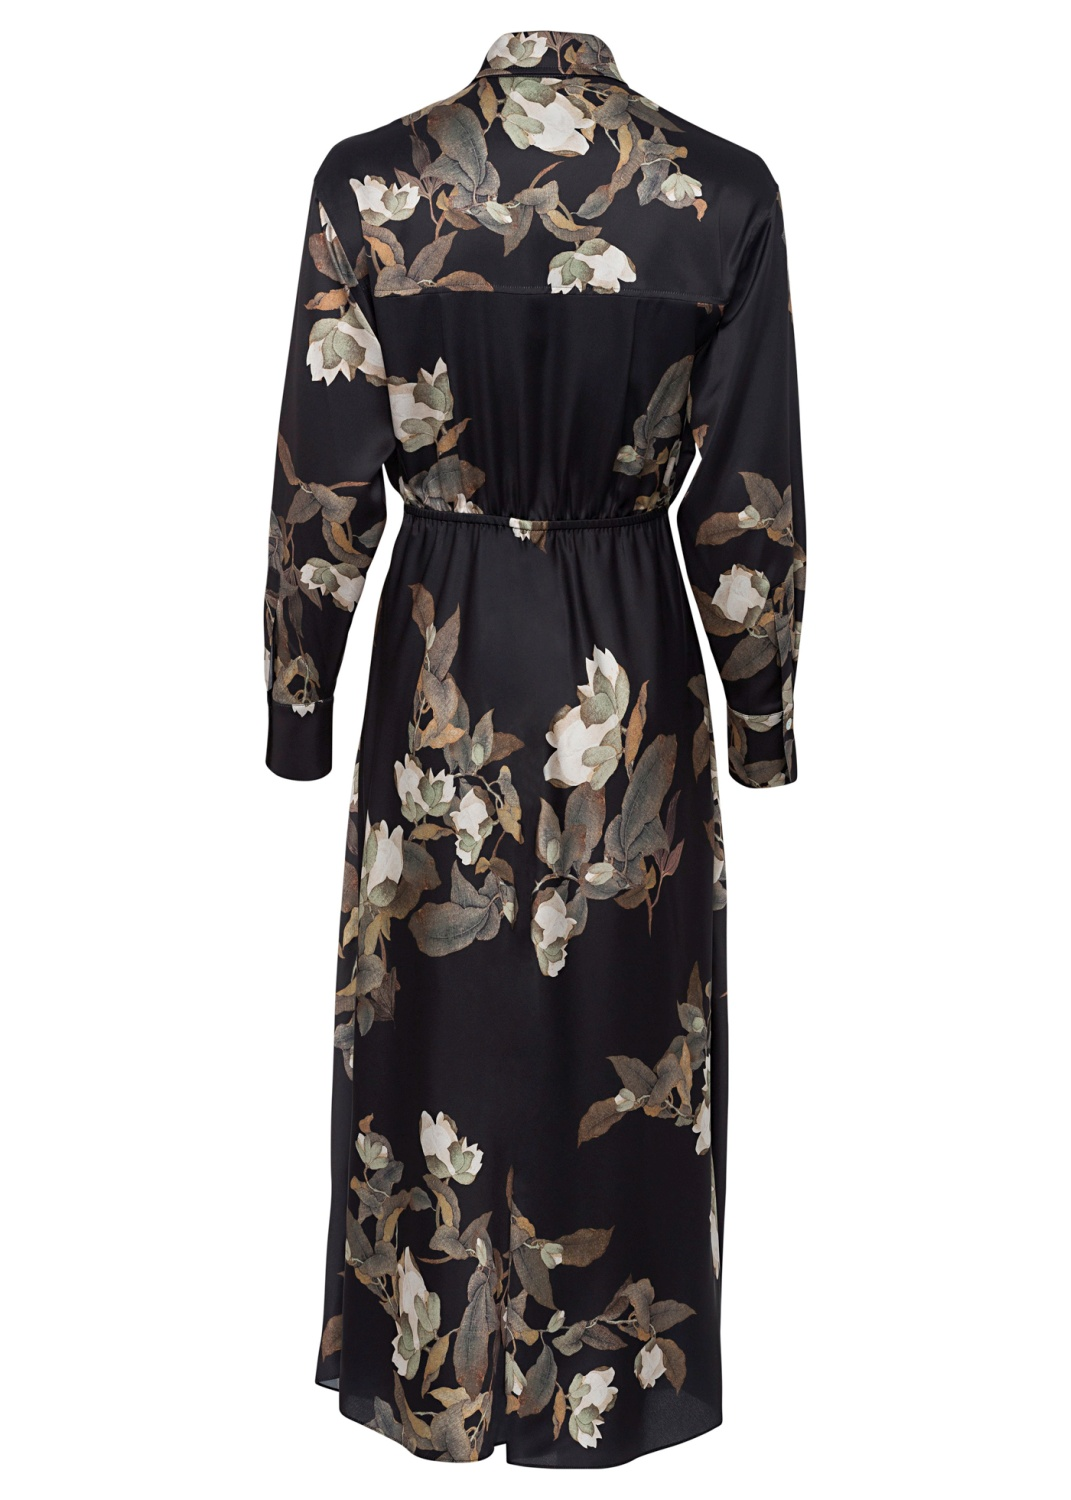 LISIANTHUS TIE FRONT SHIRT DRESS image number 1